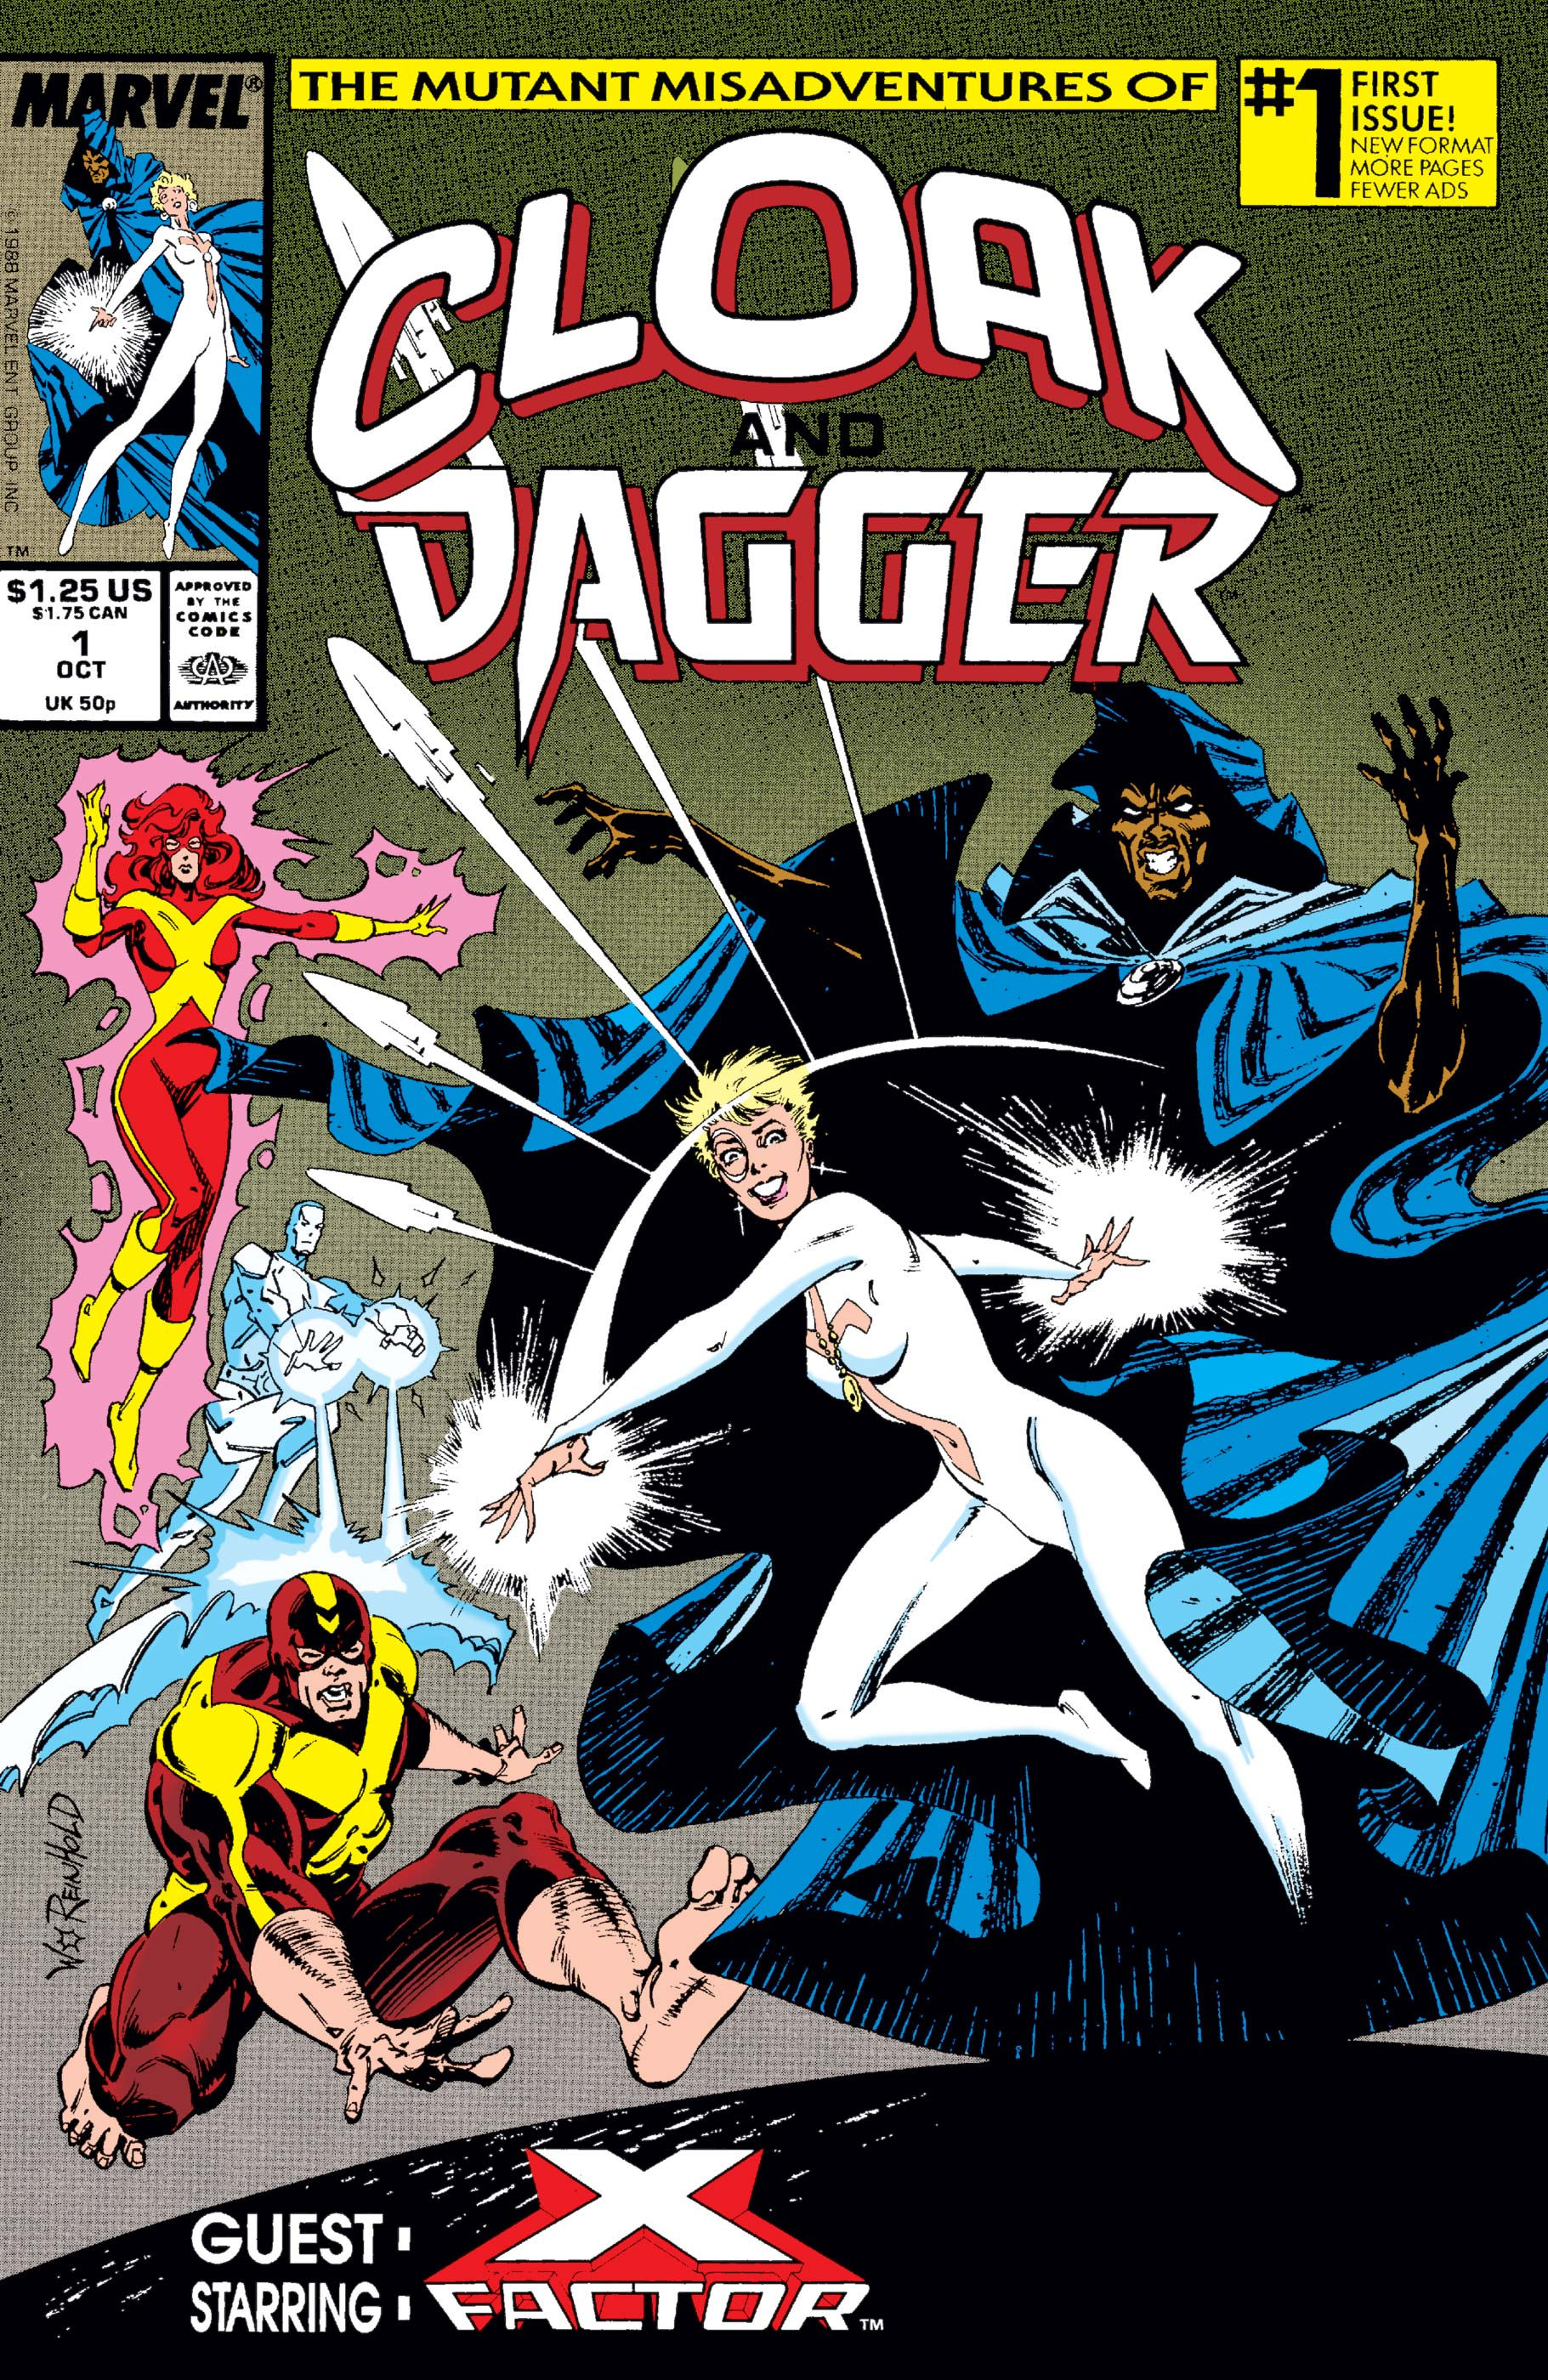 The Mutant Misadventures of Cloak and Dagger (1988) #1